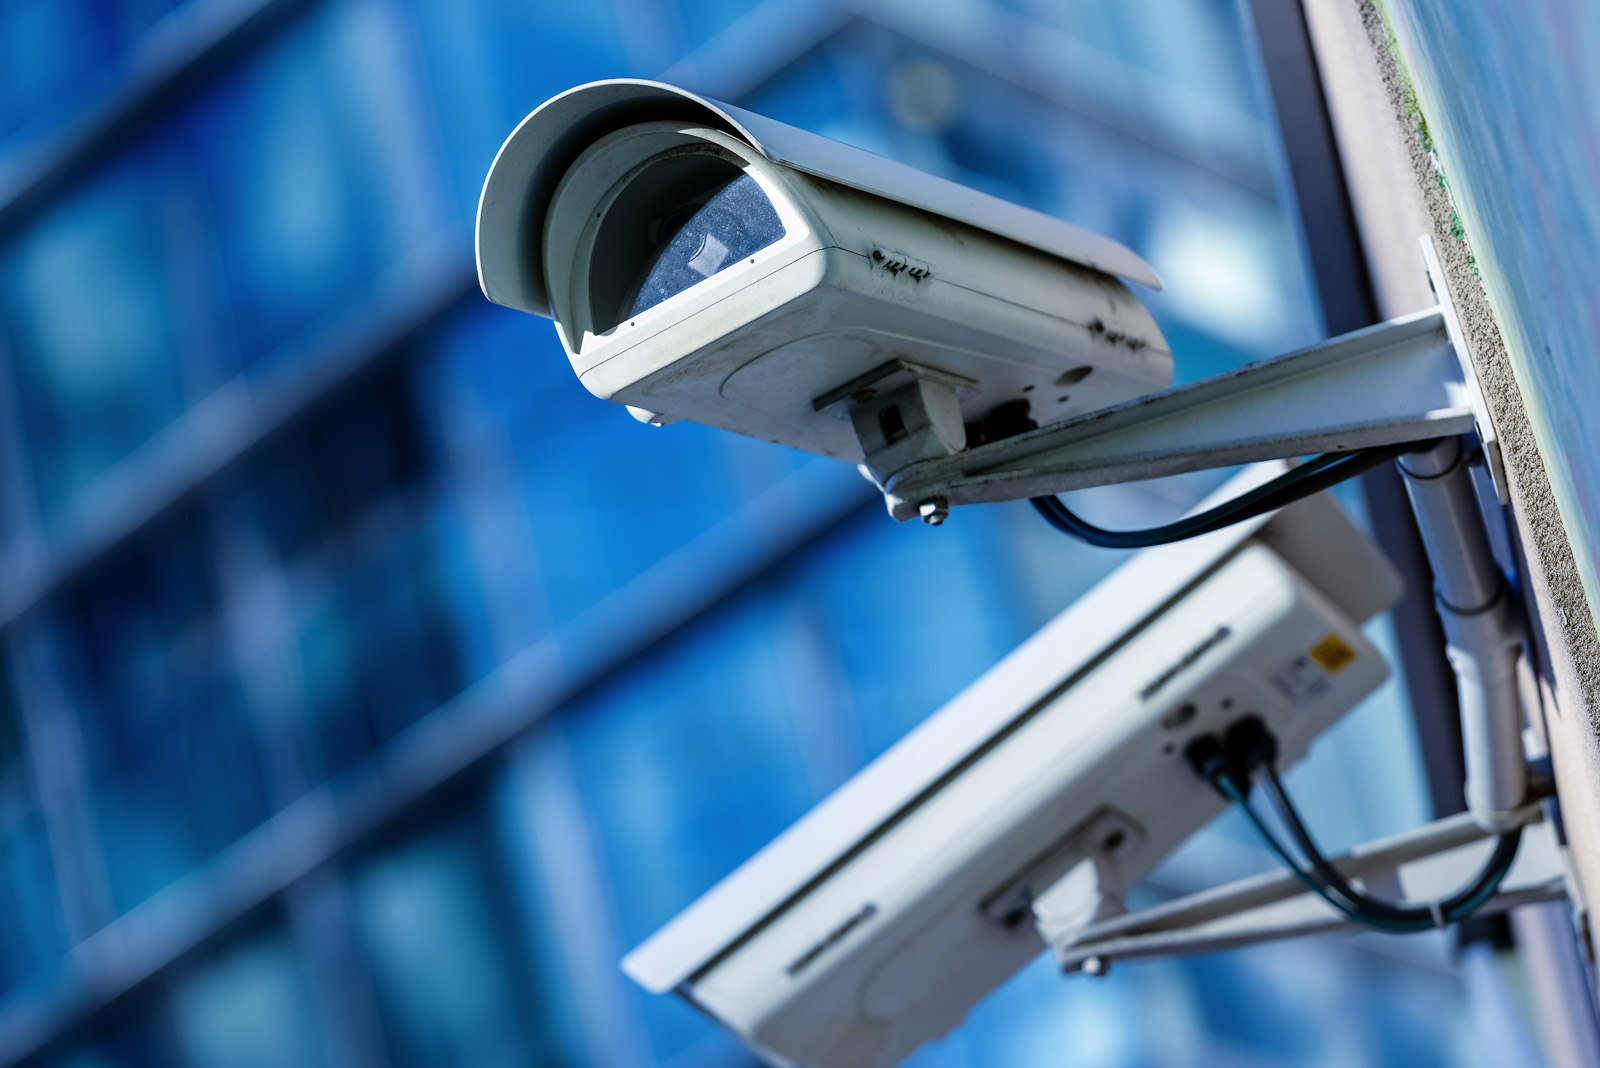 bigstock-Security-Camera-And-Urban-Vide-61811687